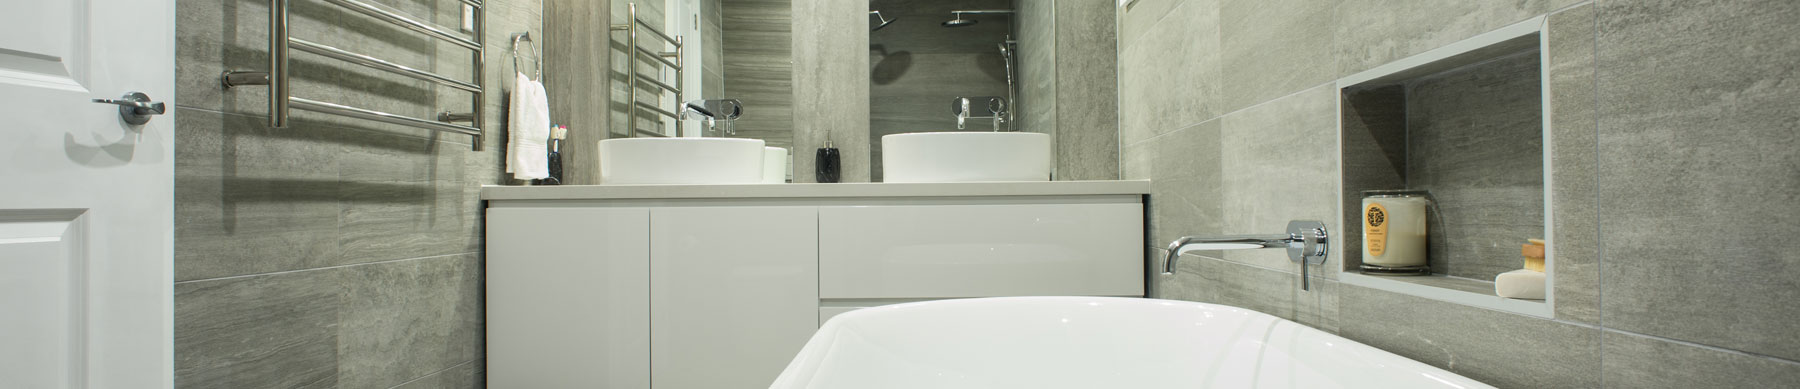 bathroom renovations company sydney